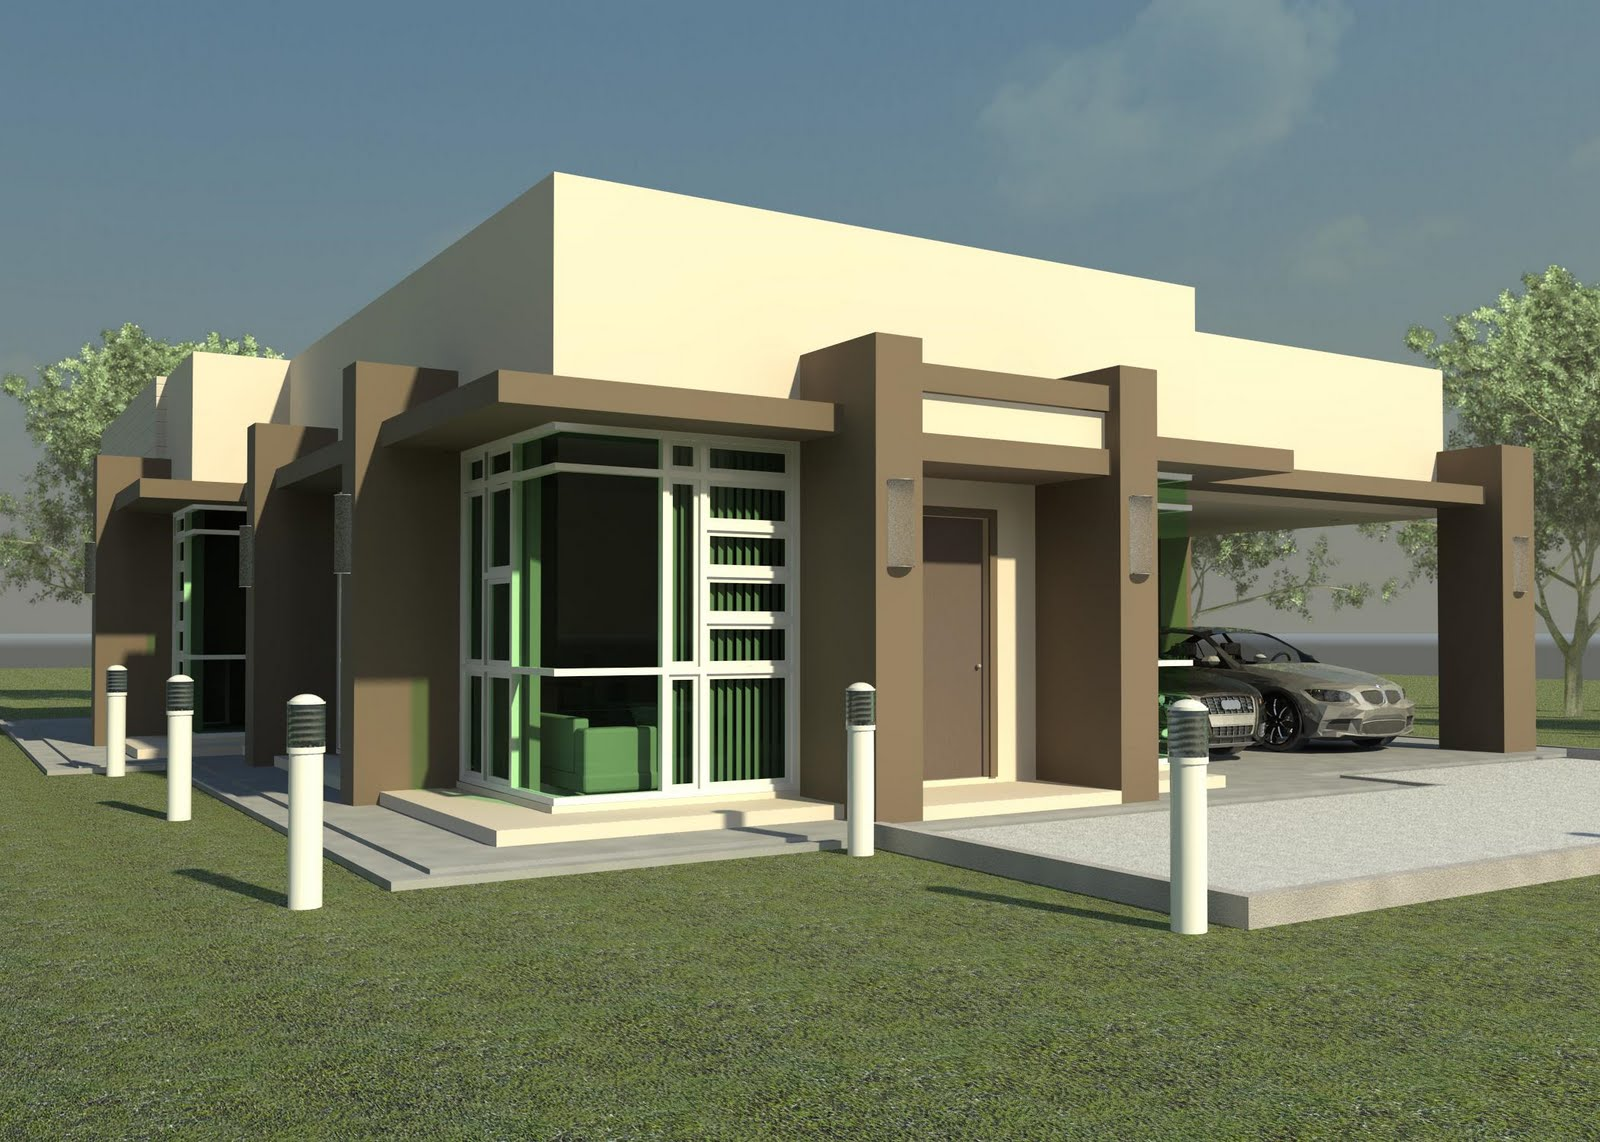 New home designs latest modern small homes designs exterior for Modern small house design